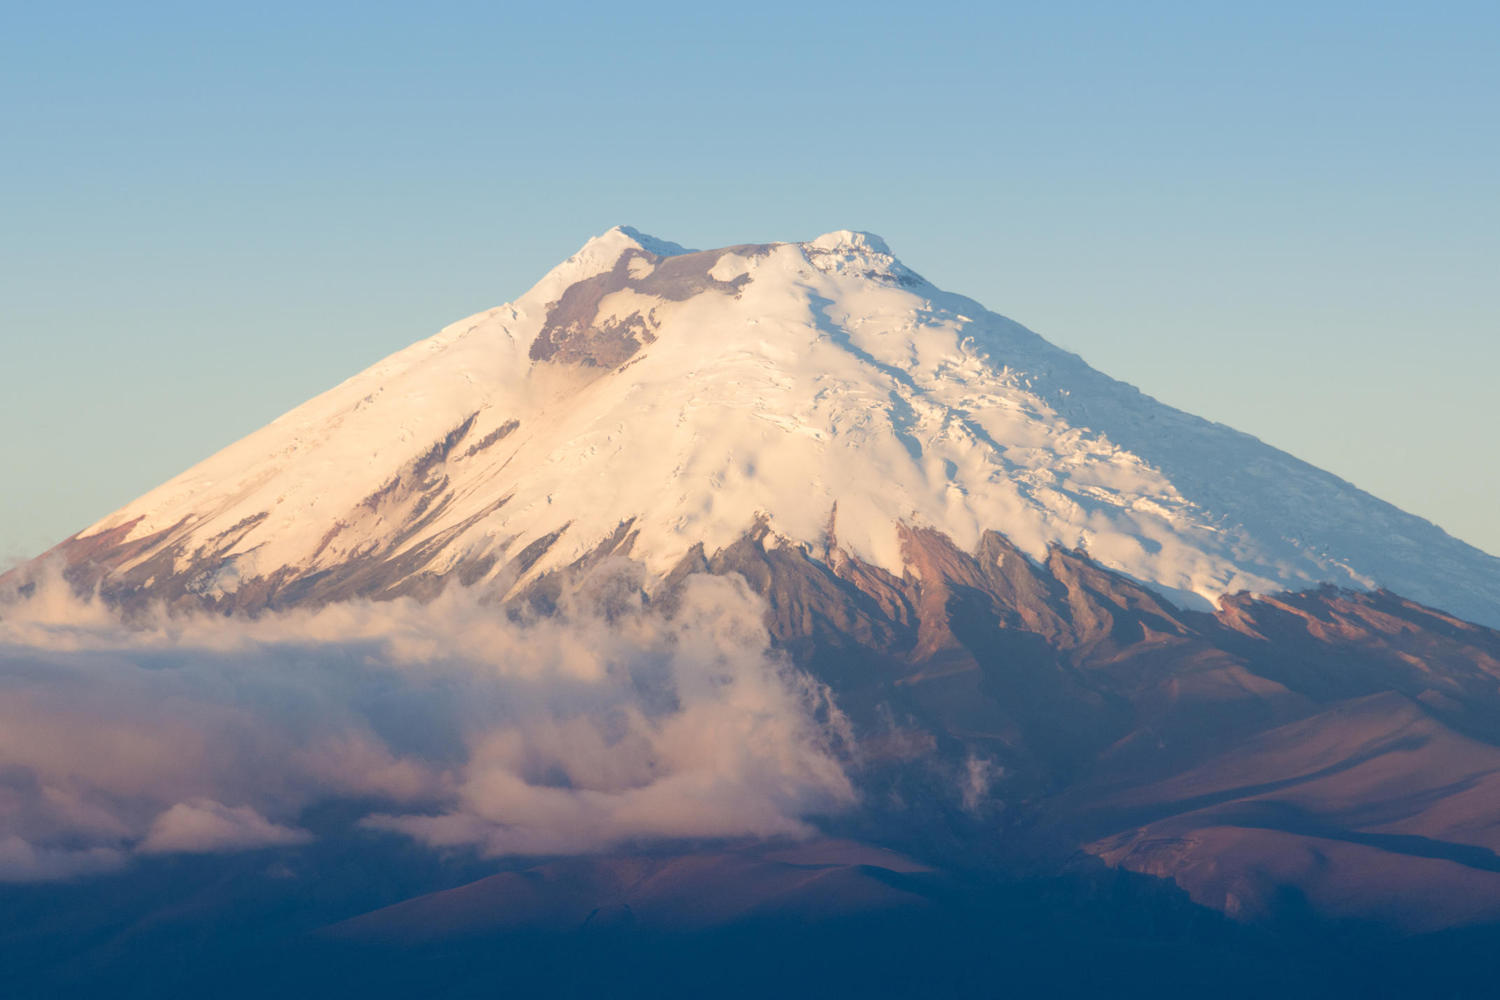 The majestic cone of Cotopaxi, the world's highest volcano